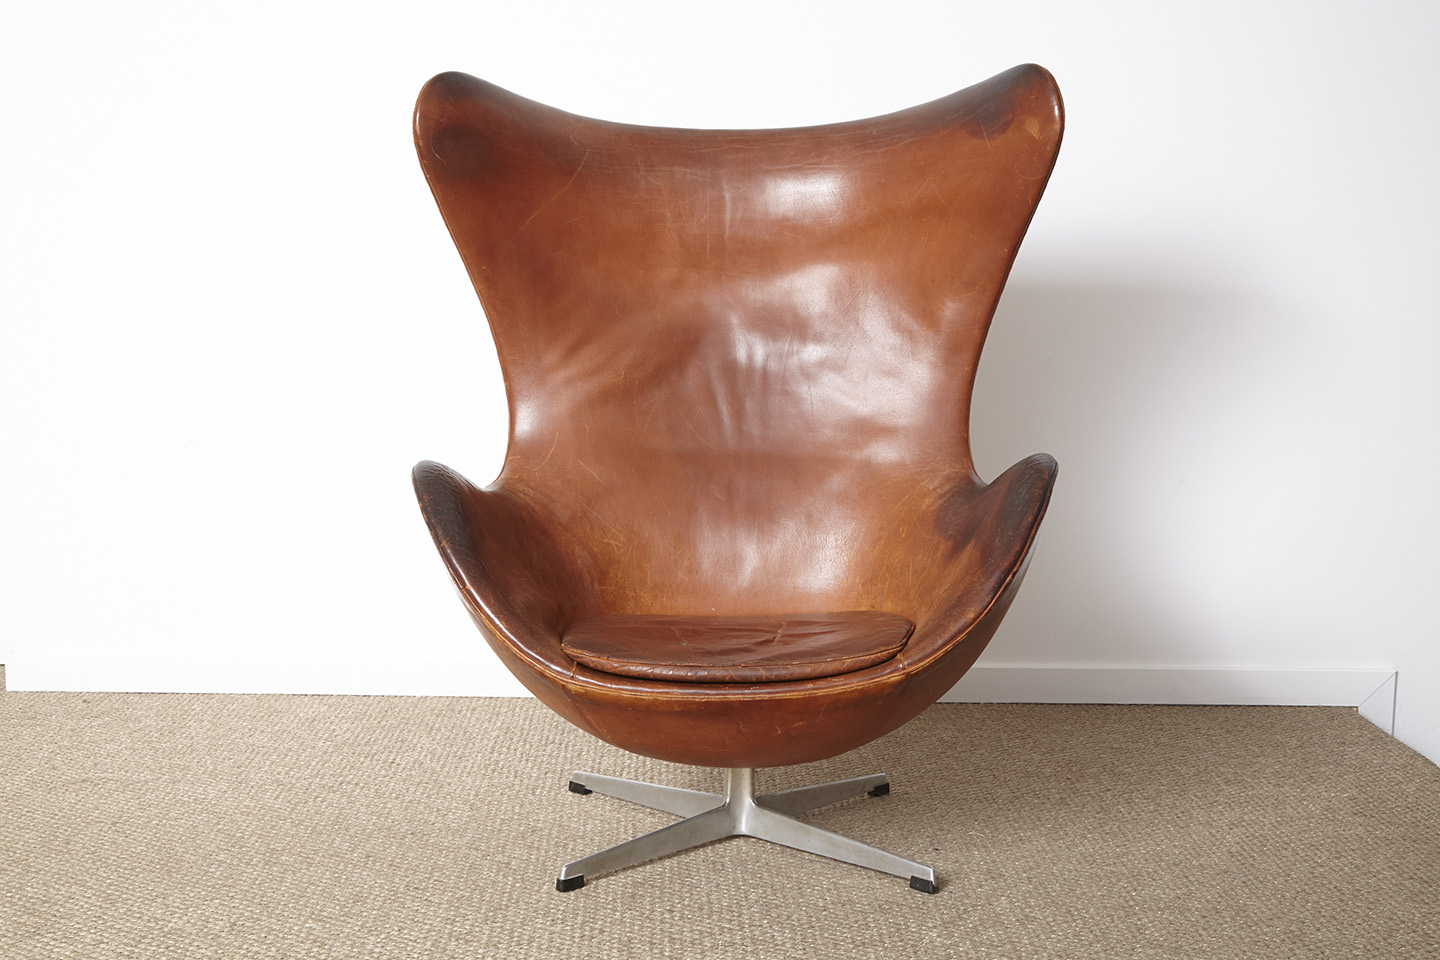 1 arne jacobsen egg chair 1958 axel pairon gallery for Egg chair jacobsen